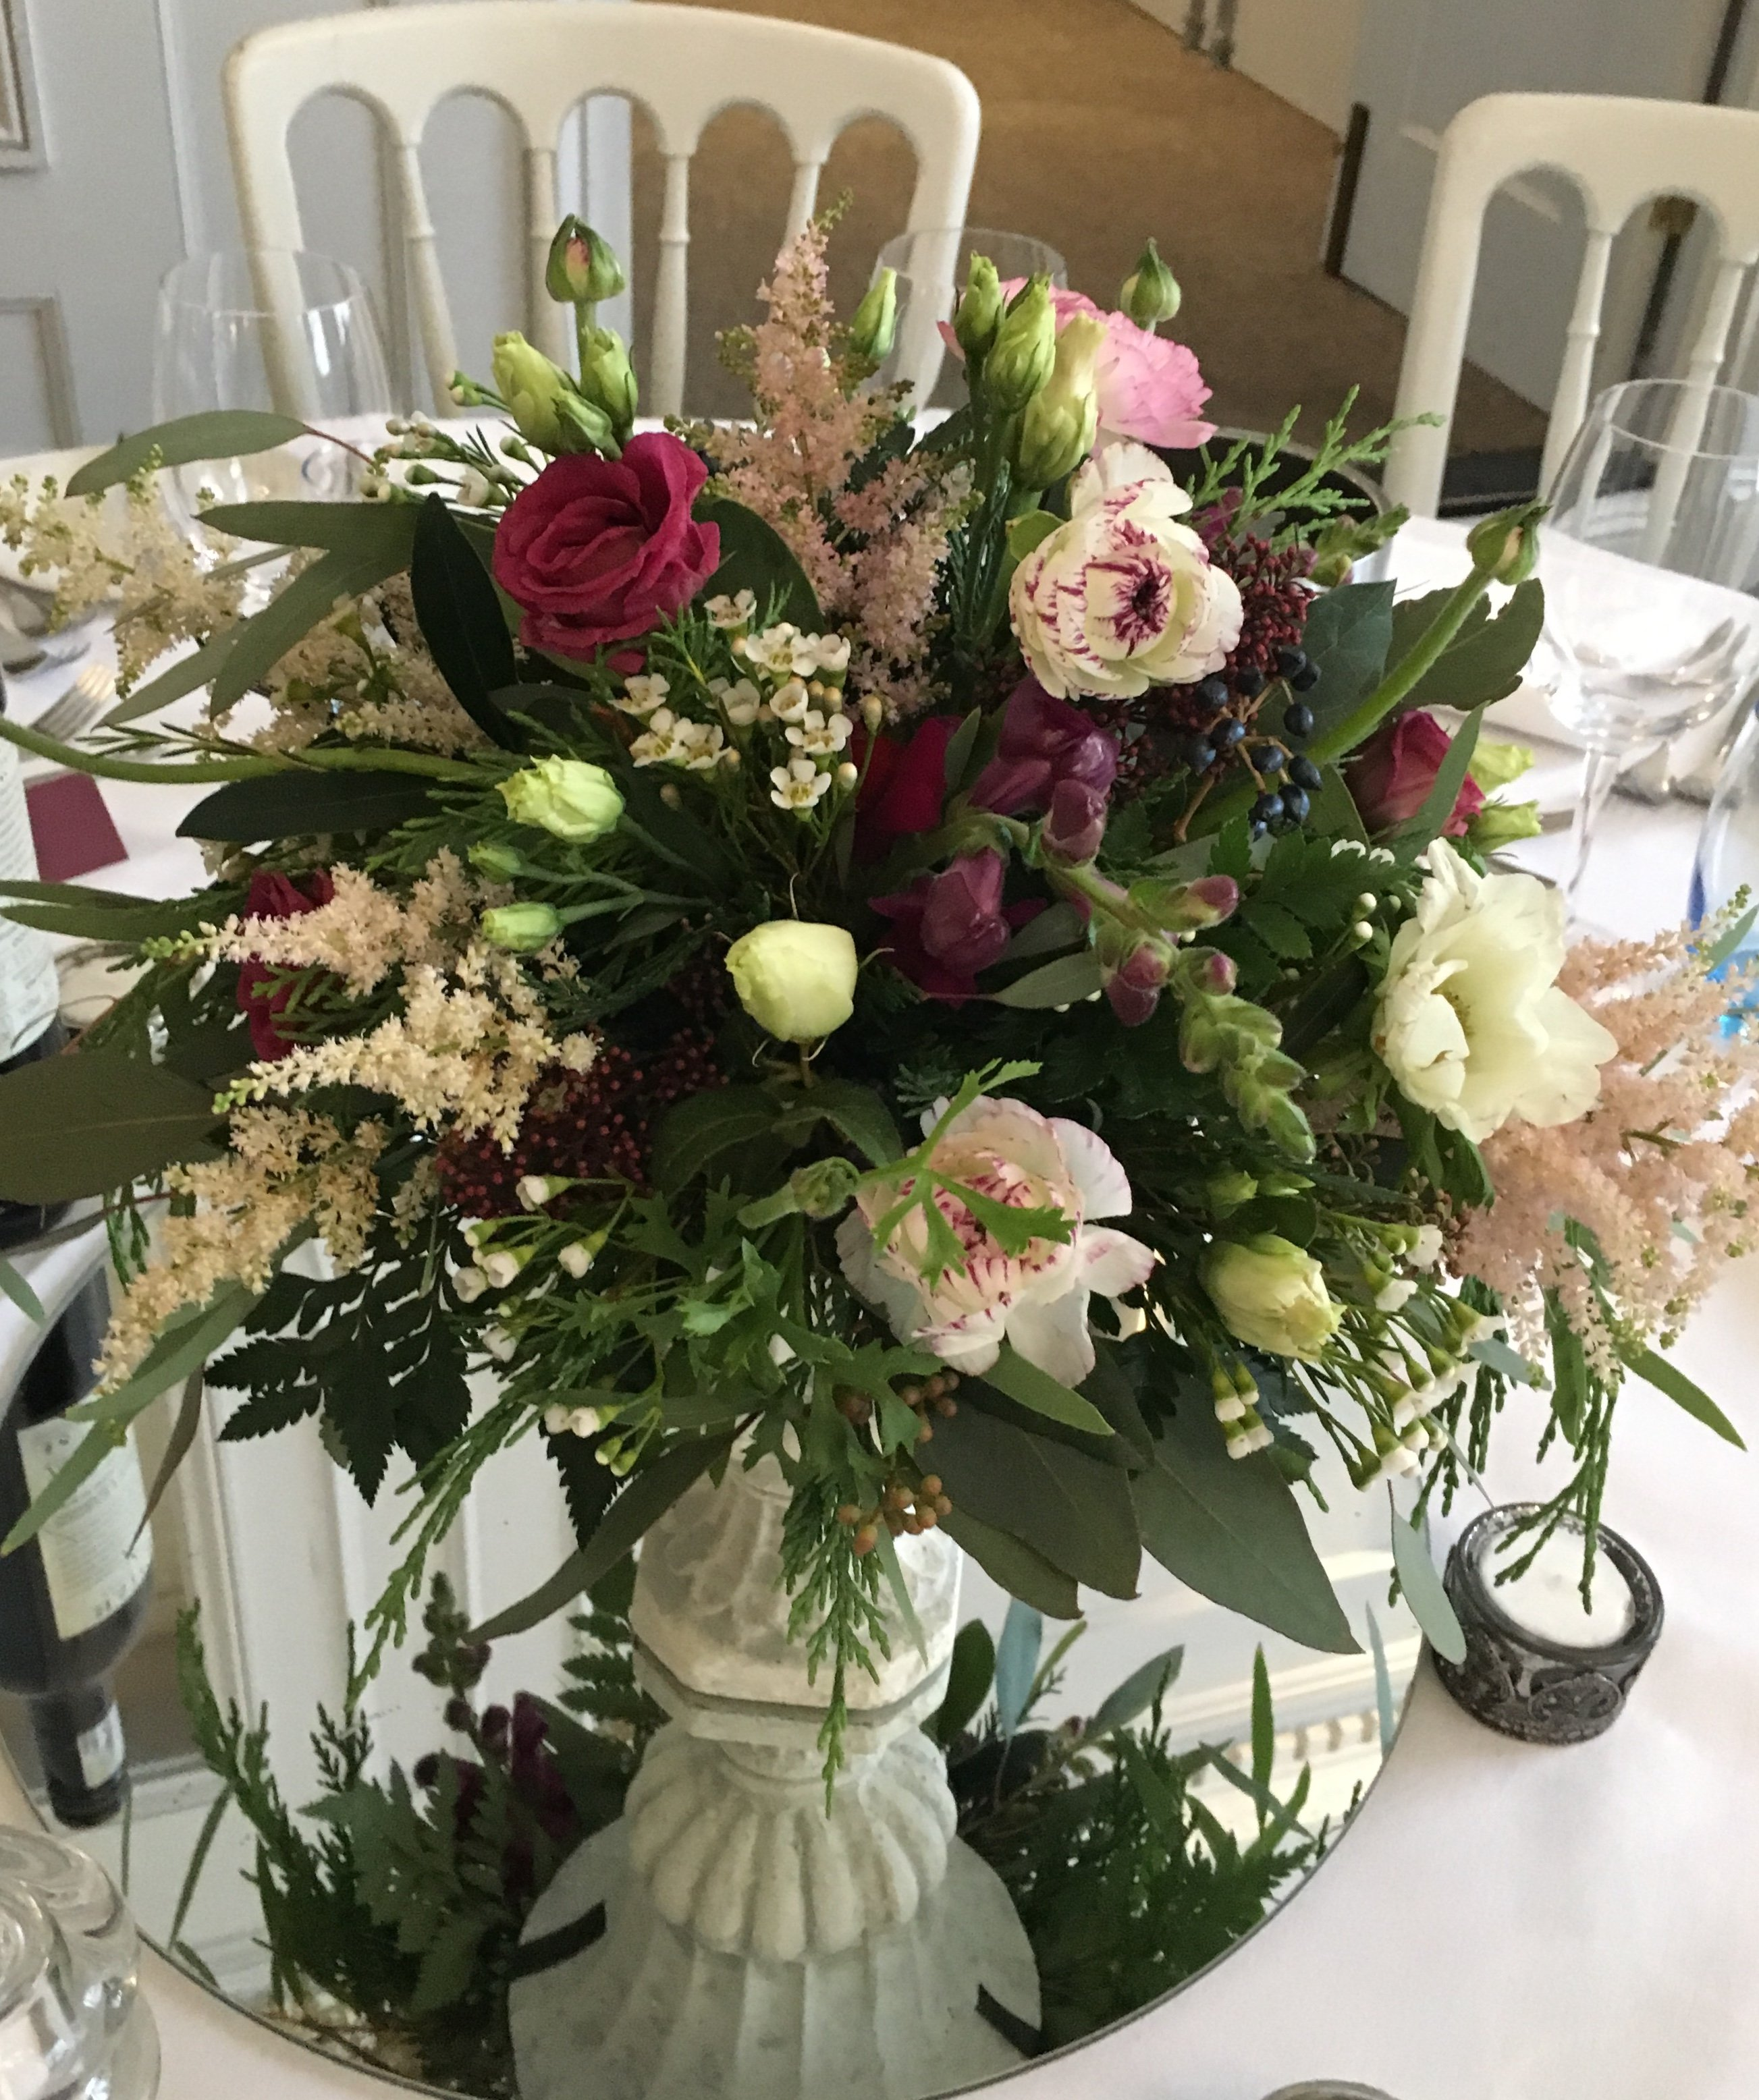 wedding table flowers in urn